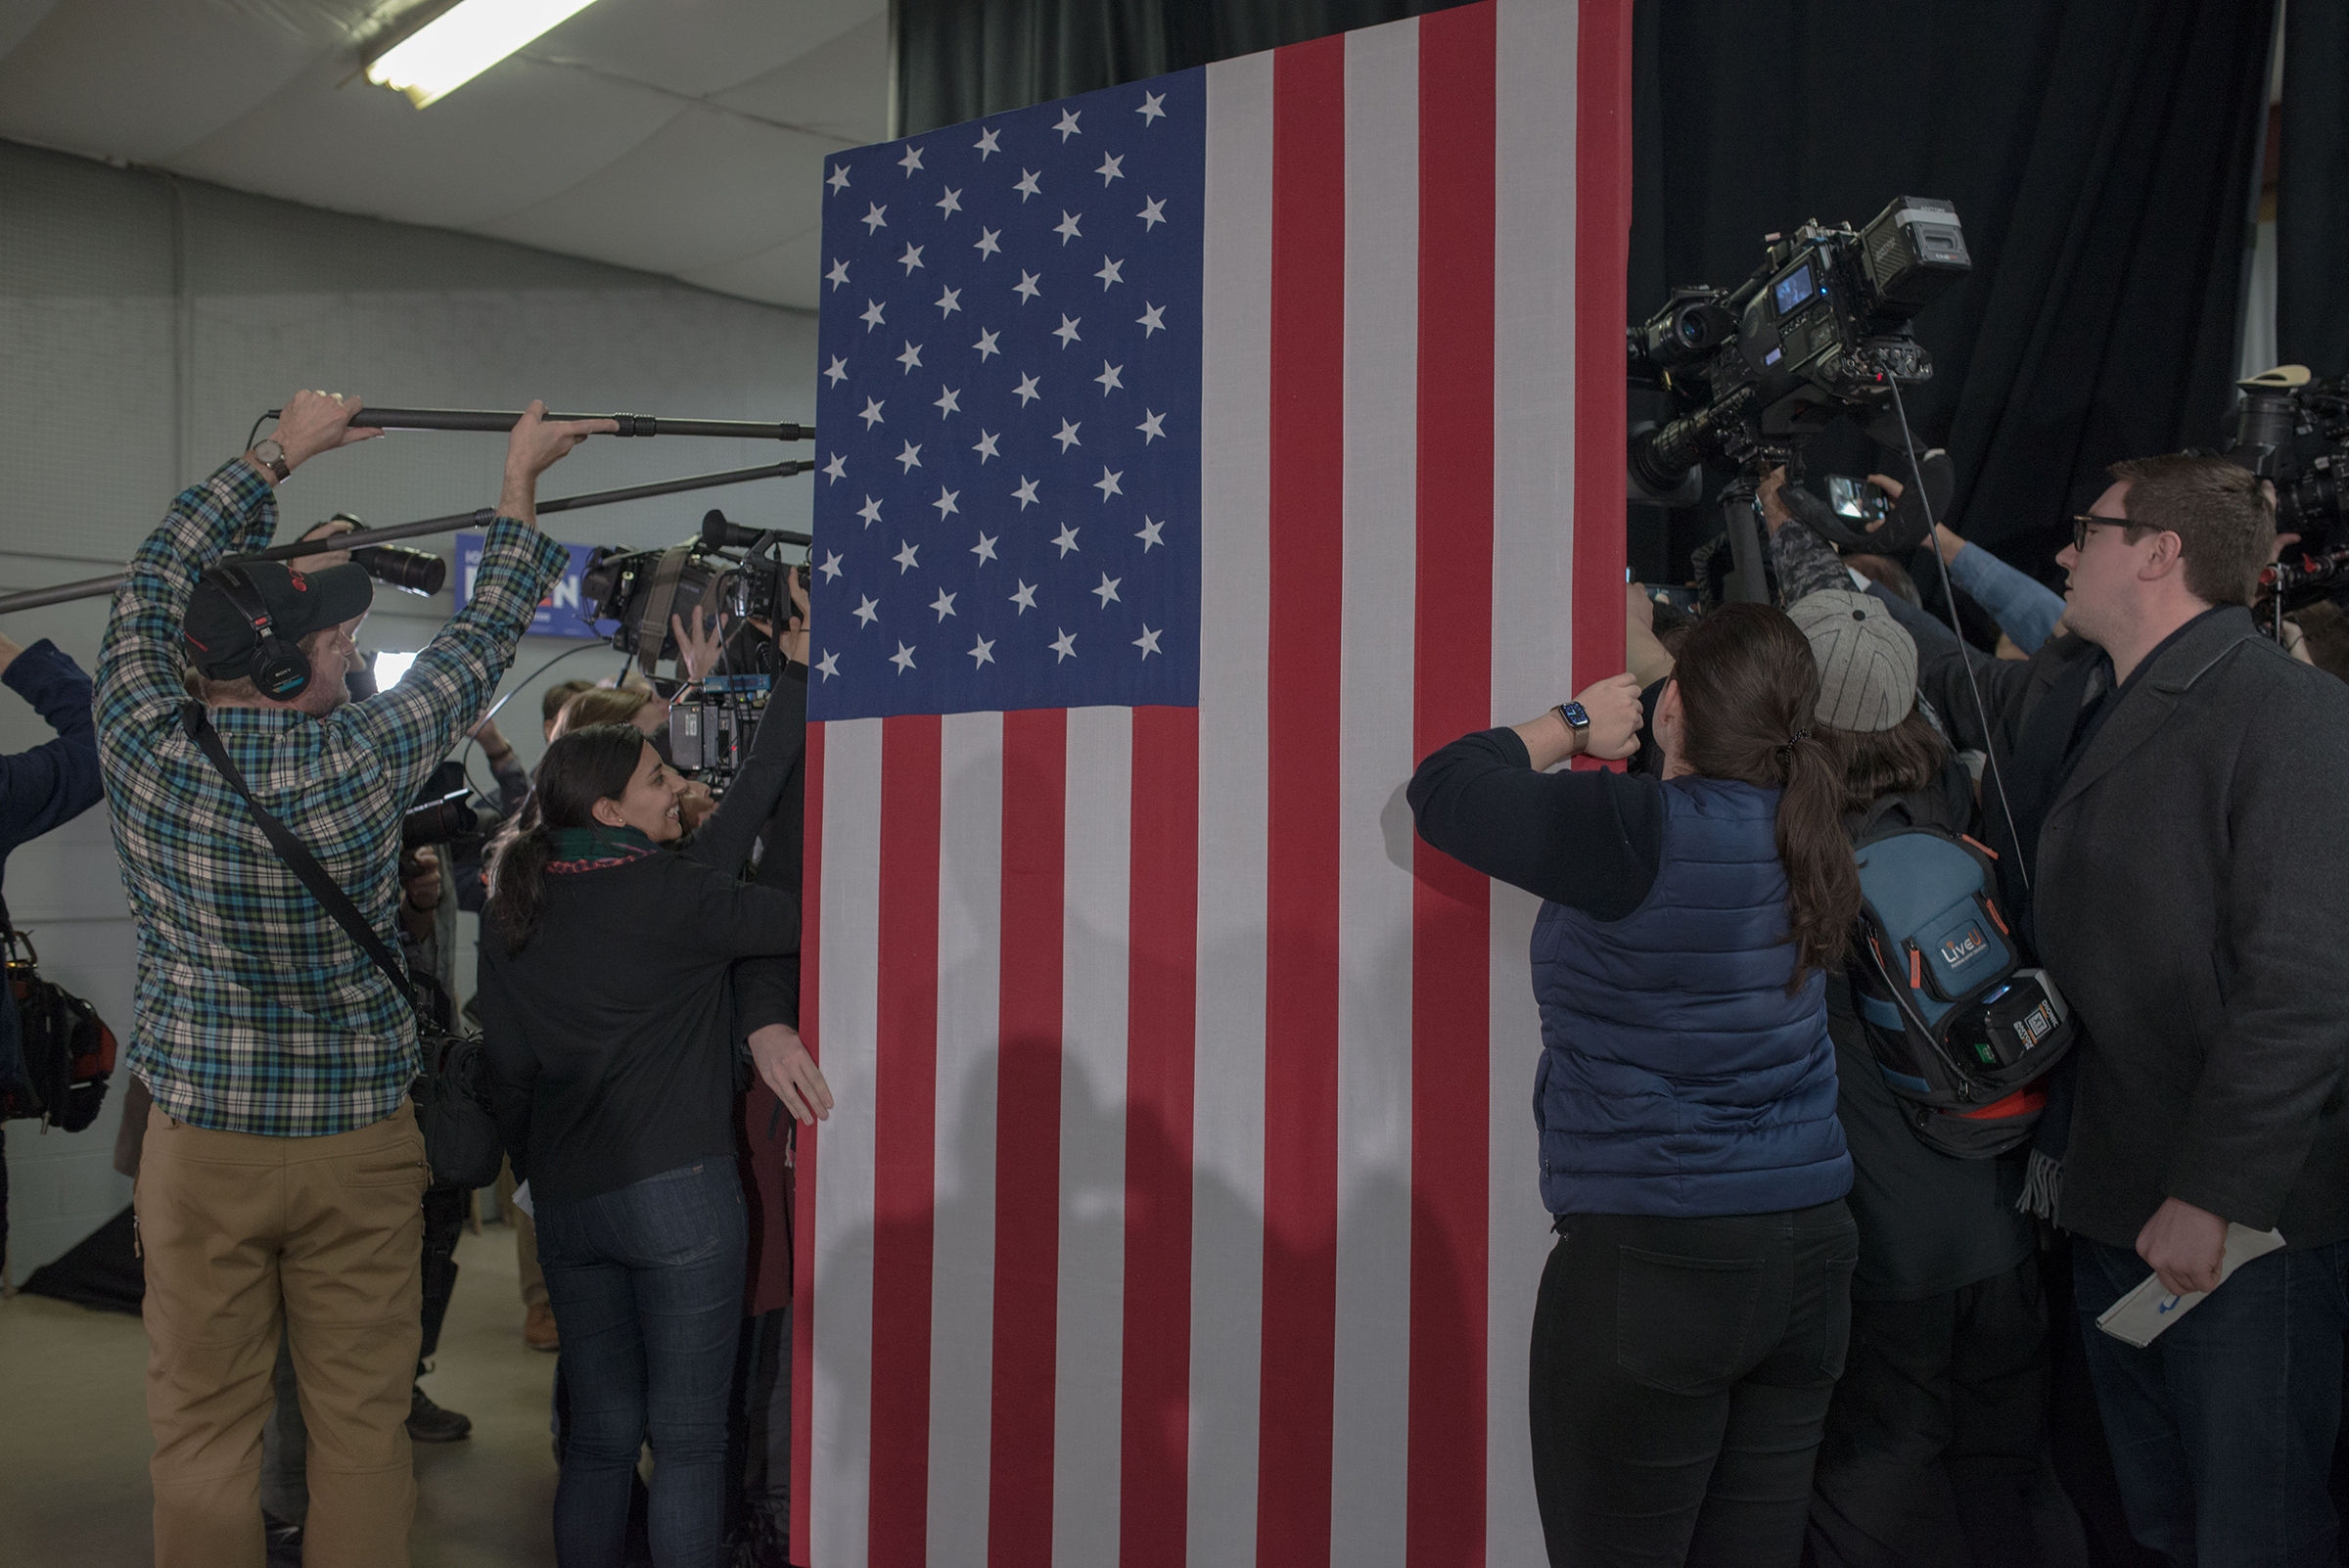 Journalists swarm Joe Biden behind an American flag in Mason City, Iowa, on Jan. 22, 2020.